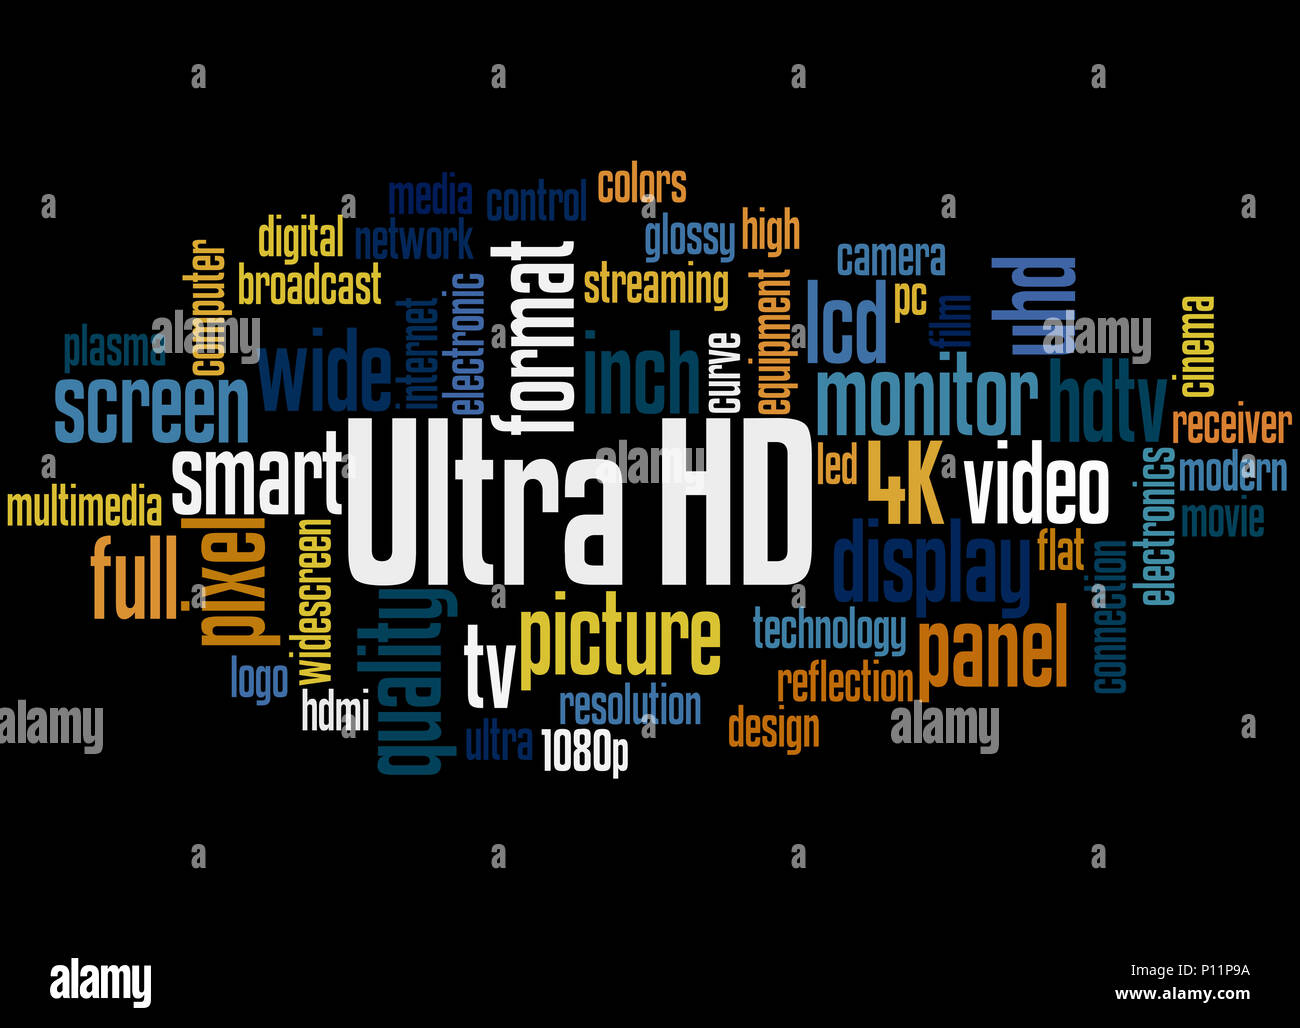 Ultra HD, word cloud concept on black background. - Stock Image